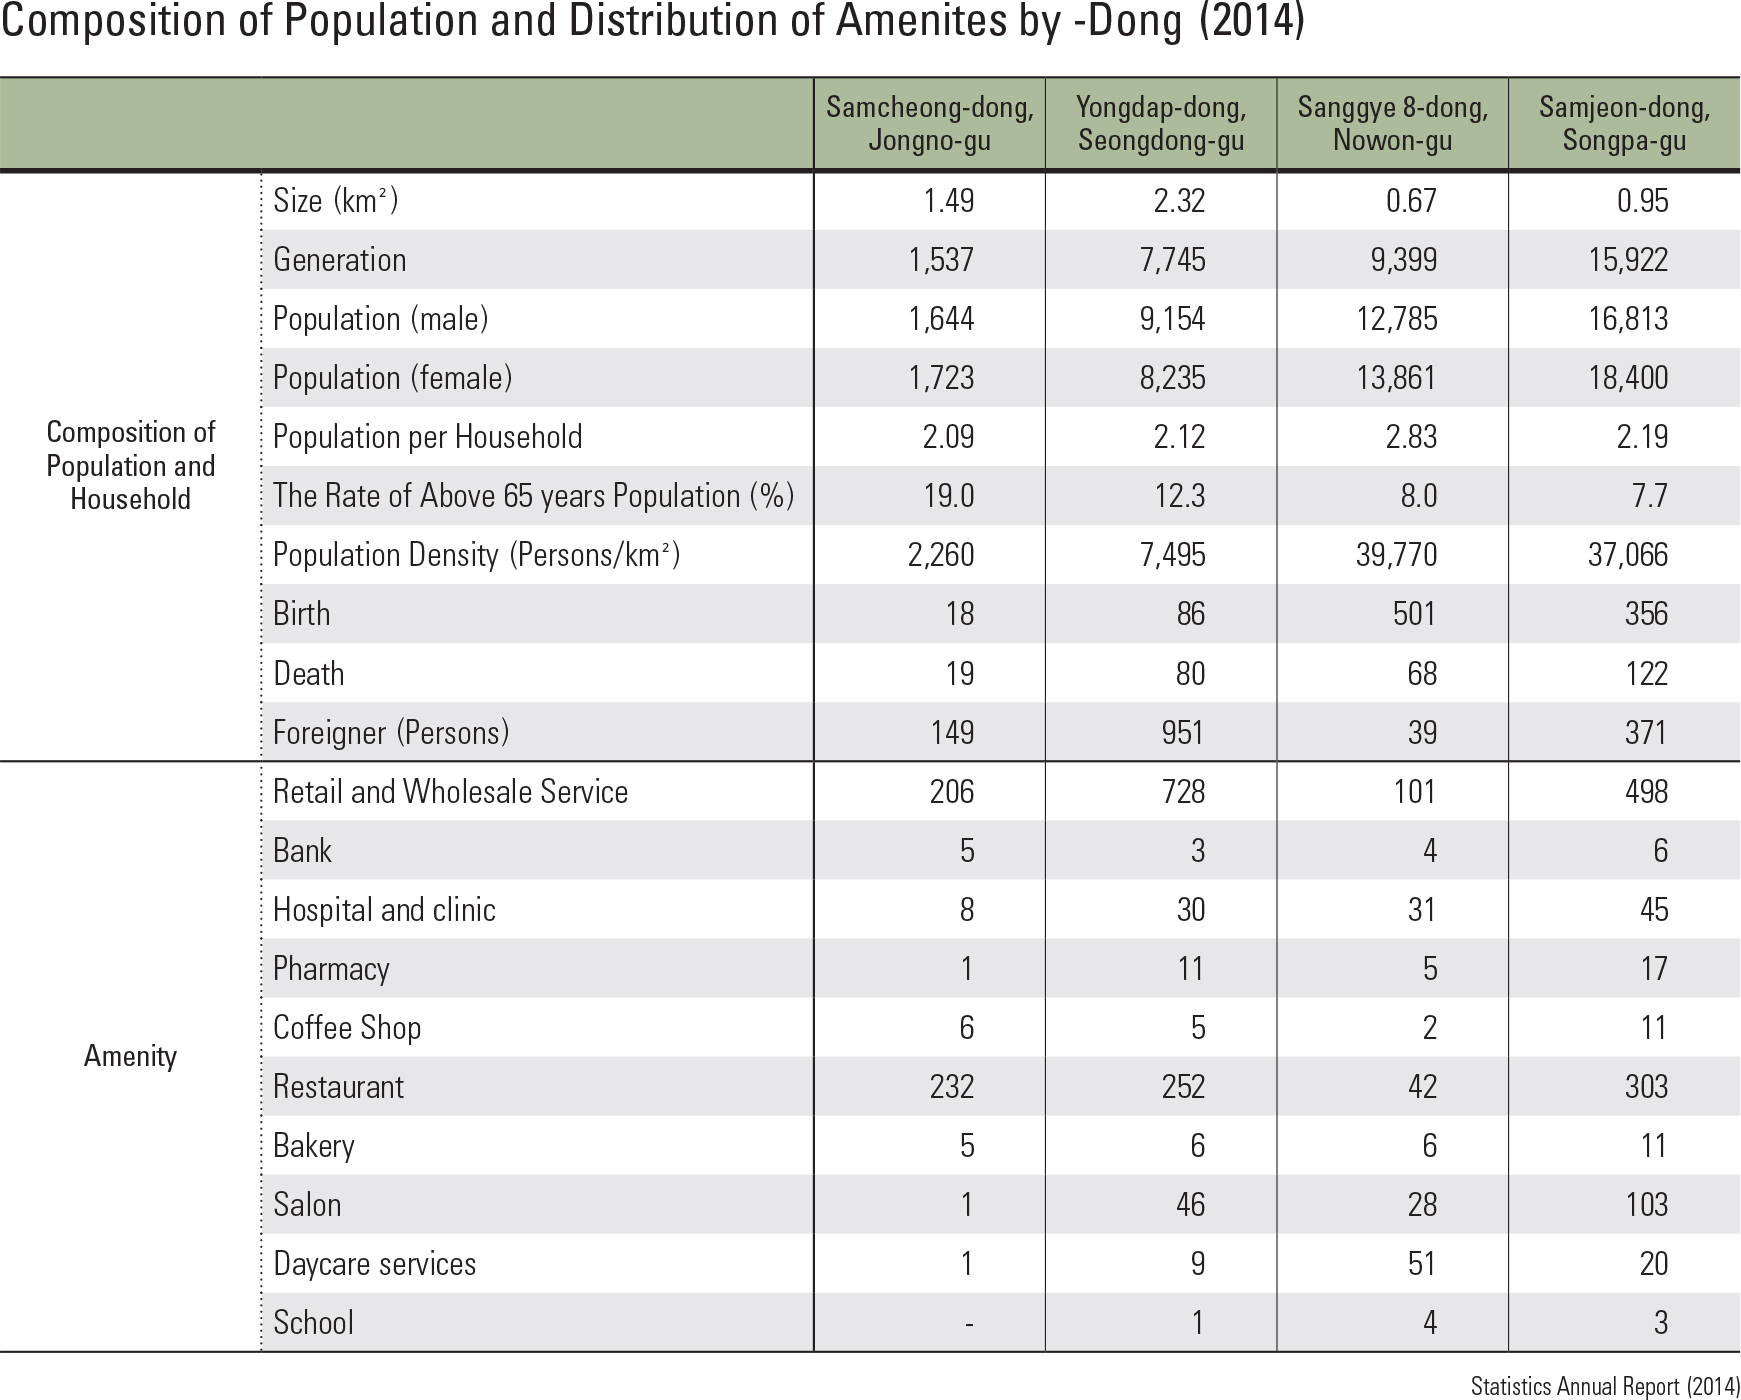 Composition of Population and Distribution of Amenites by -Dong (2014)